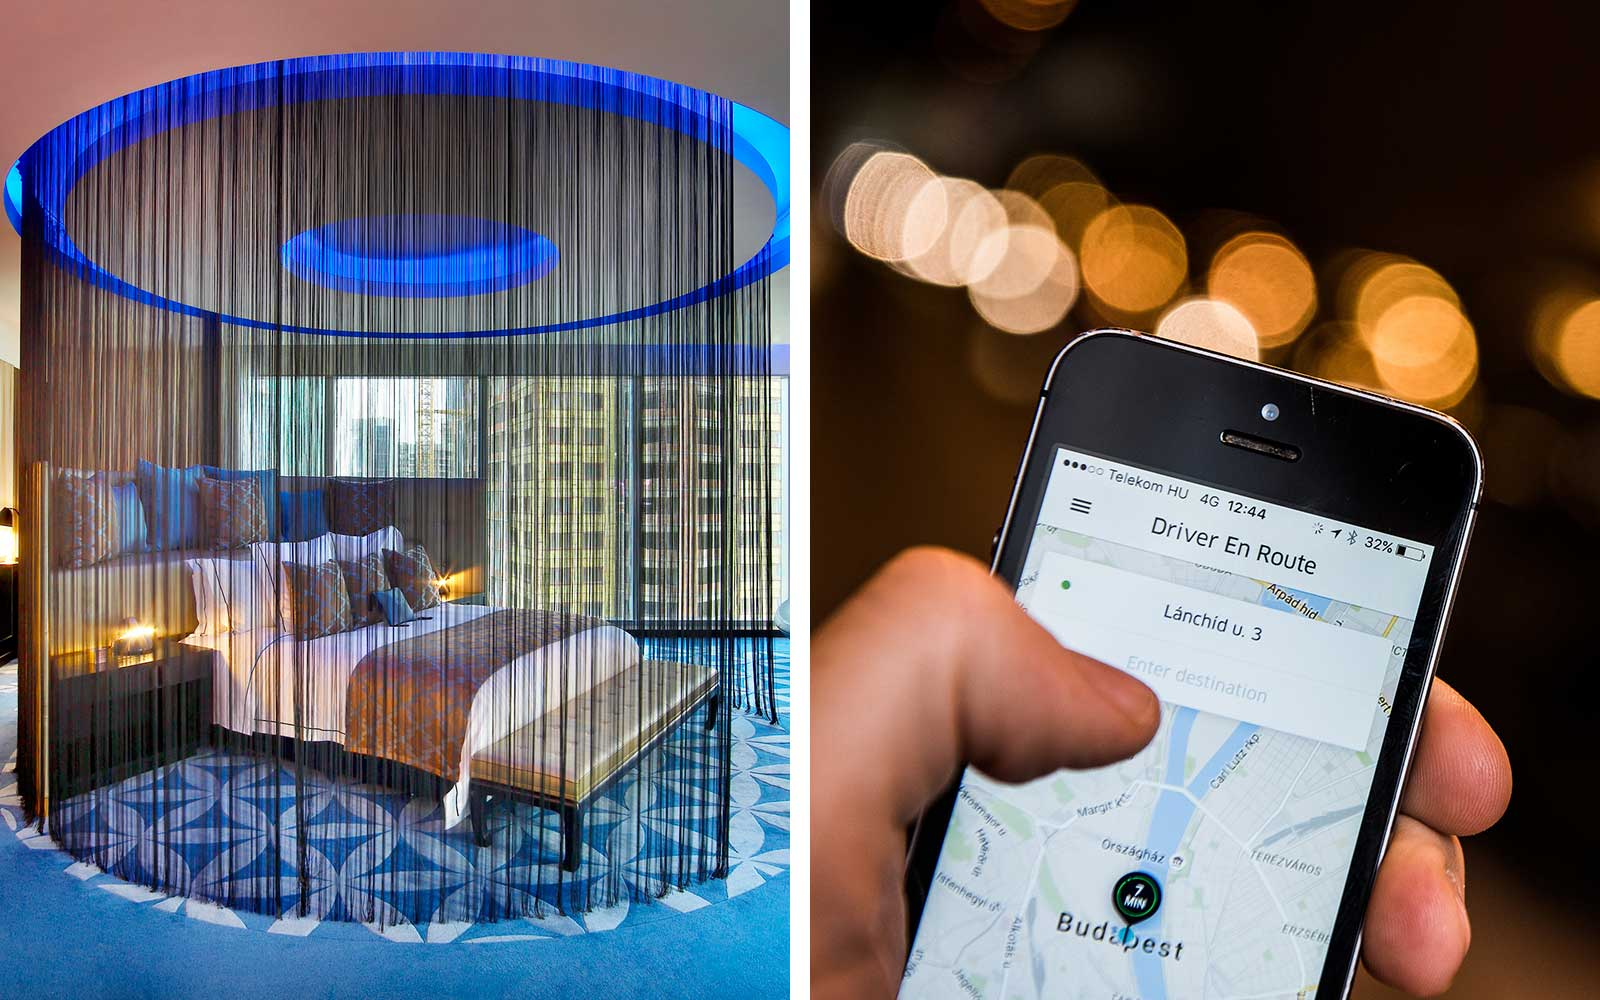 Starwood Preferred Guests Will Have to Spend Twice as Much to Earn Points on Uber Rides